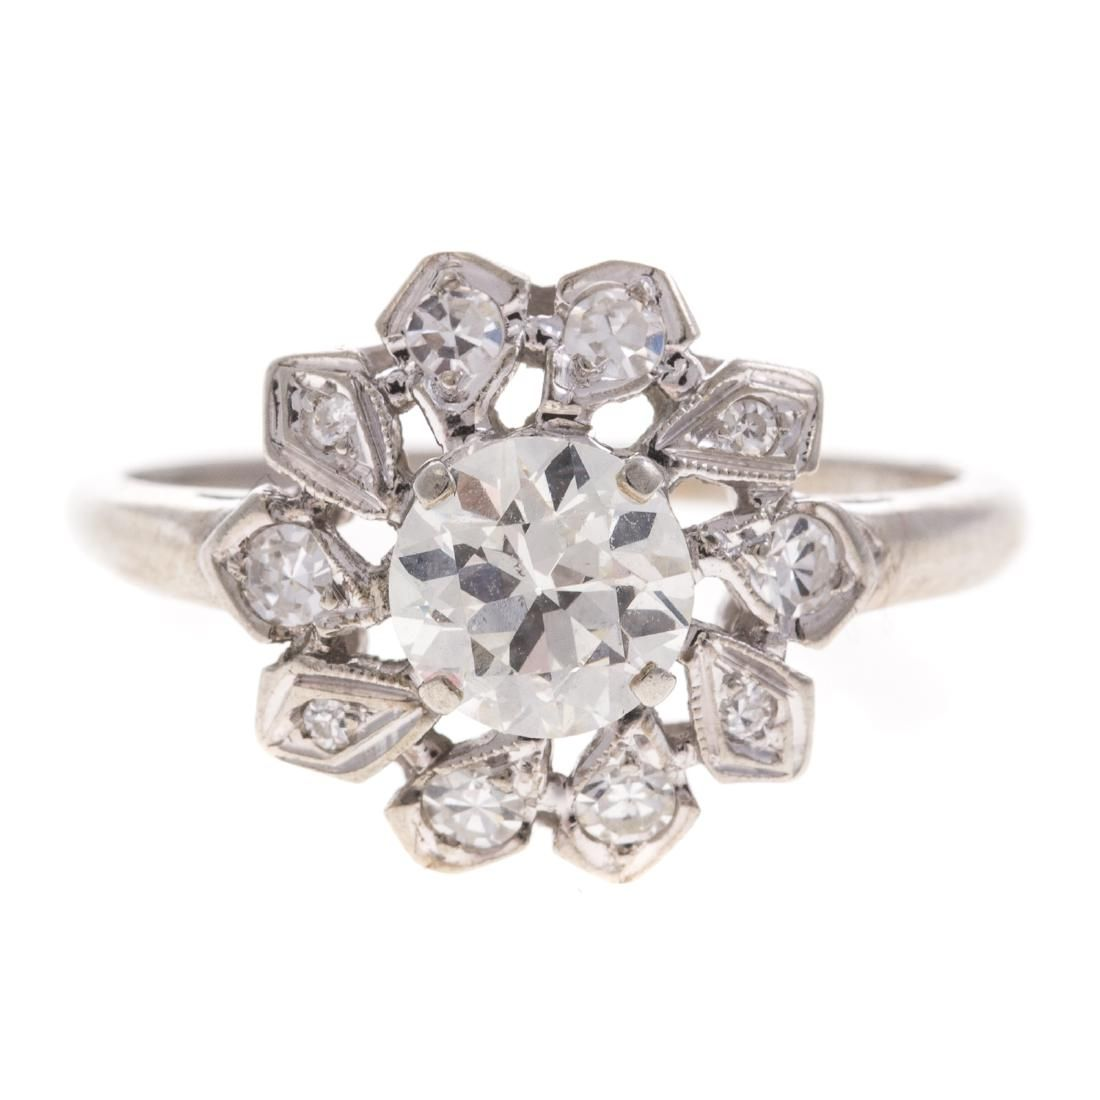 A Lady's 18K Diamond Cocktail Ring